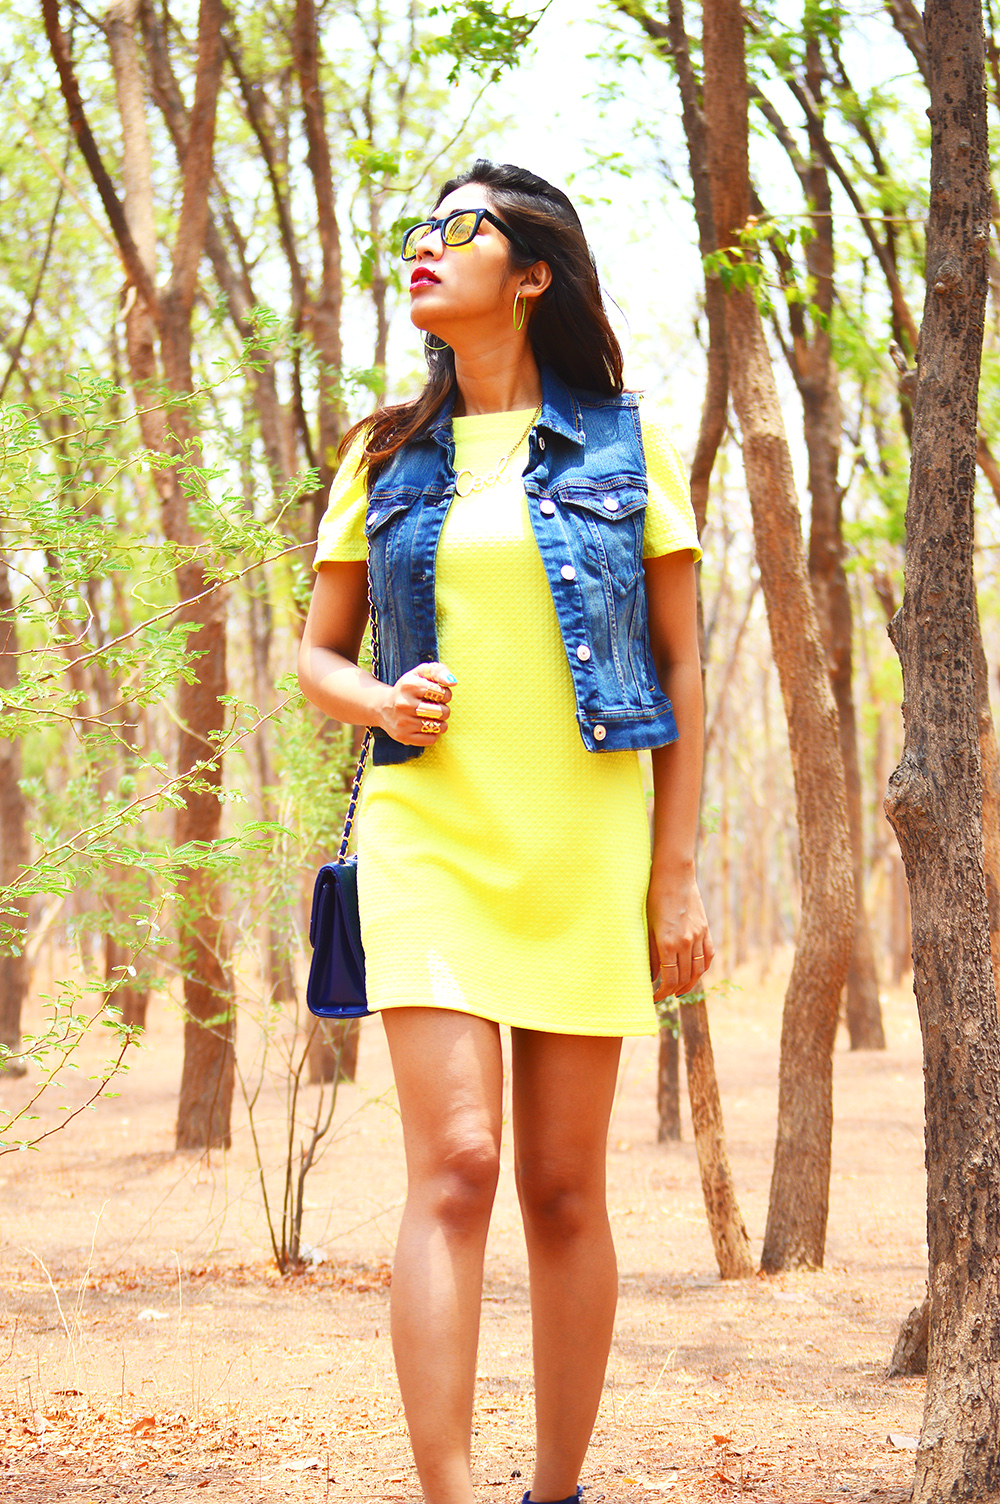 Fashion, Style, Street Style, Summer Fashion, Fashion Photography, Yellow Dress, Denim Vest, Sling Bag, Fashion Blogger, Indian Fashion-3